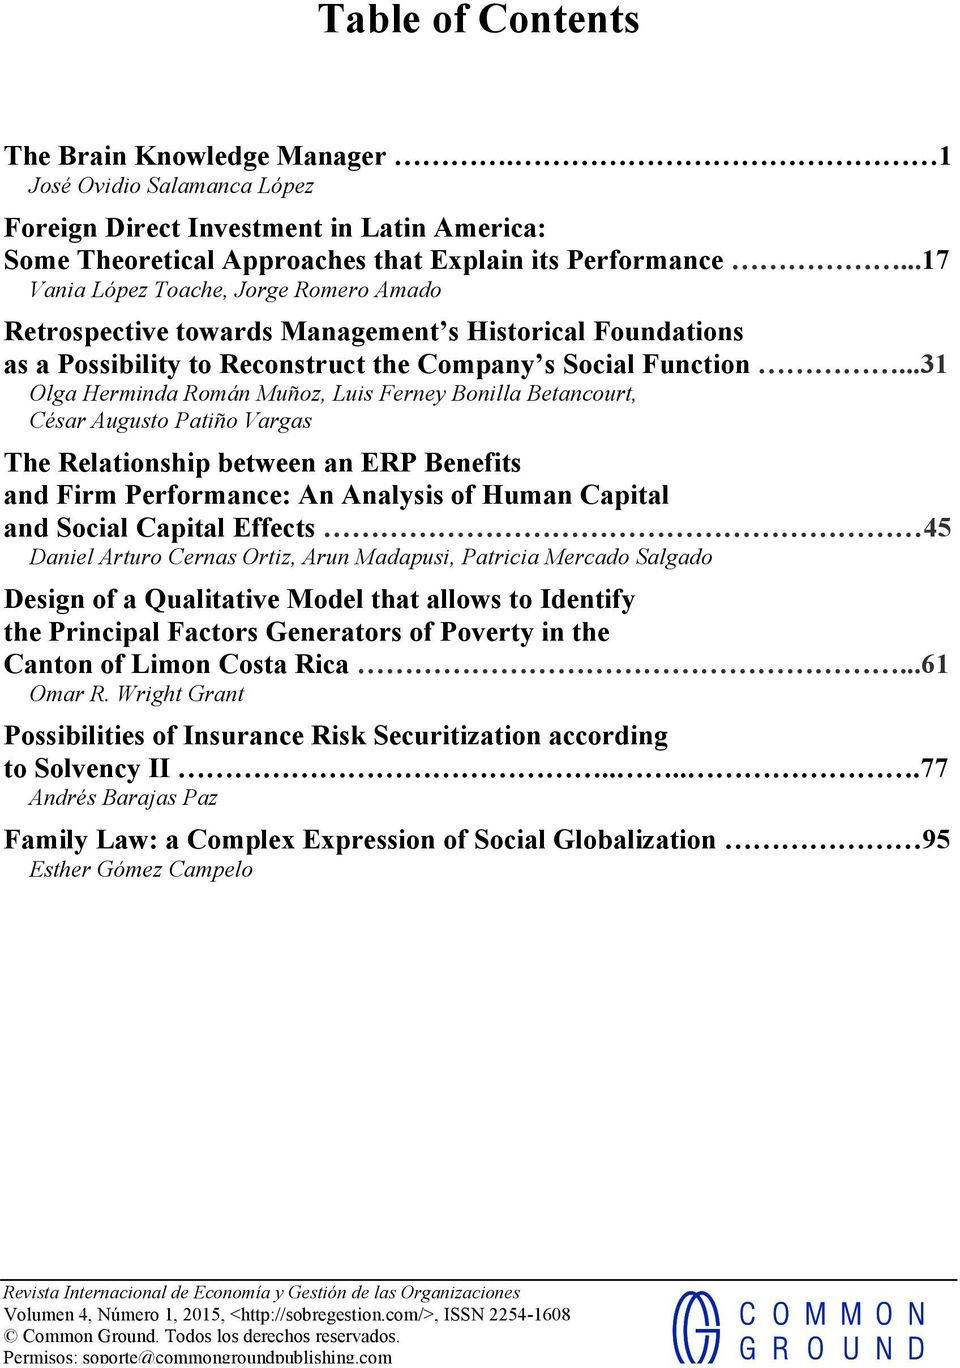 ..31 Olga Herminda Román Muñoz, Luis Ferney Bonilla Betancourt, César Augusto Patiño Vargas The Relationship between an ERP Benefits and Firm Performance: An Analysis of Human Capital and Social